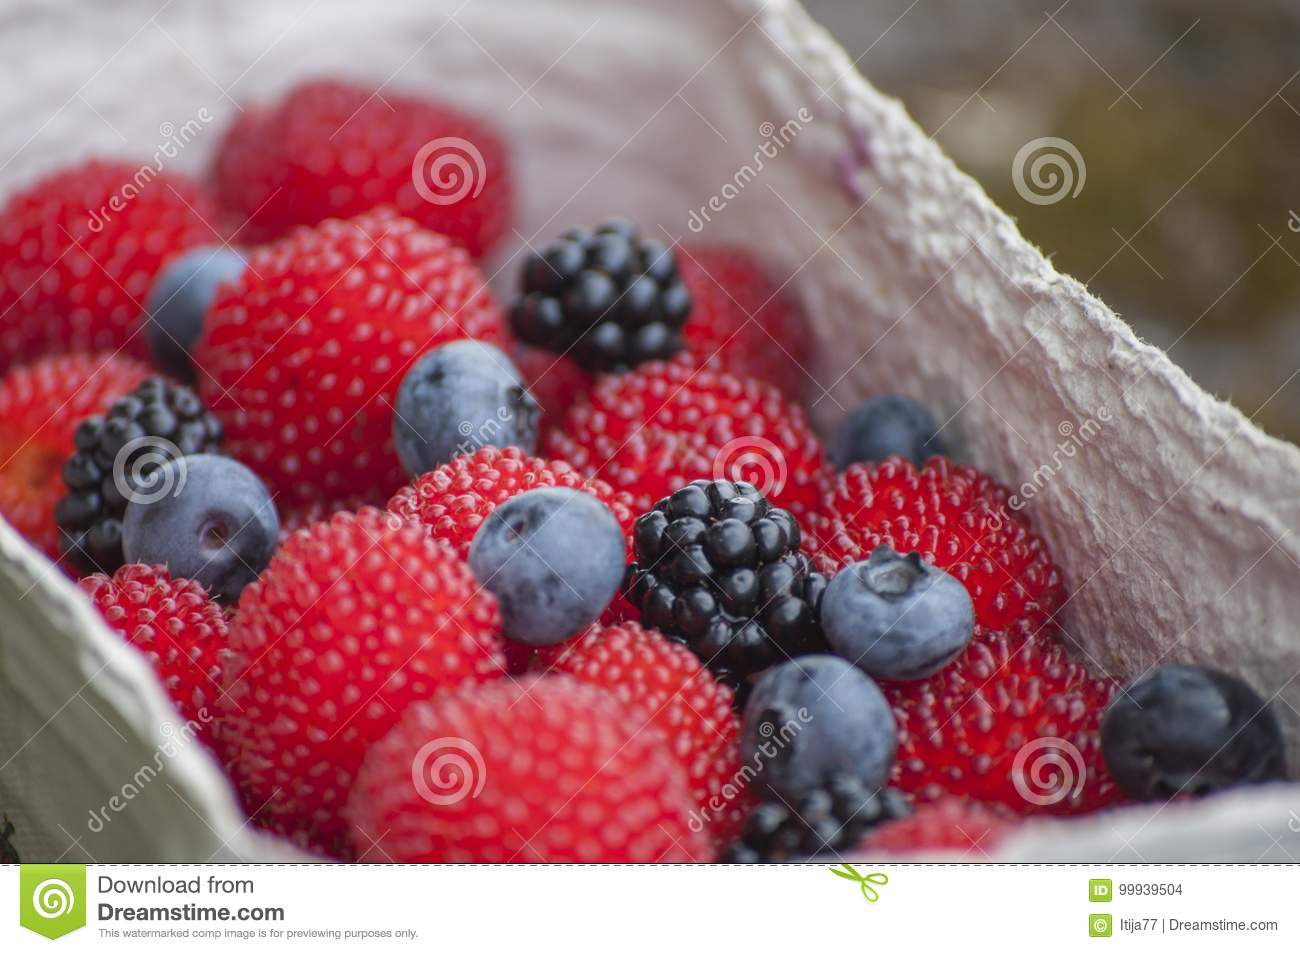 Closeup Of Red Balloon Berries Or Strawberry Raspberry Blueberries And Blackberries